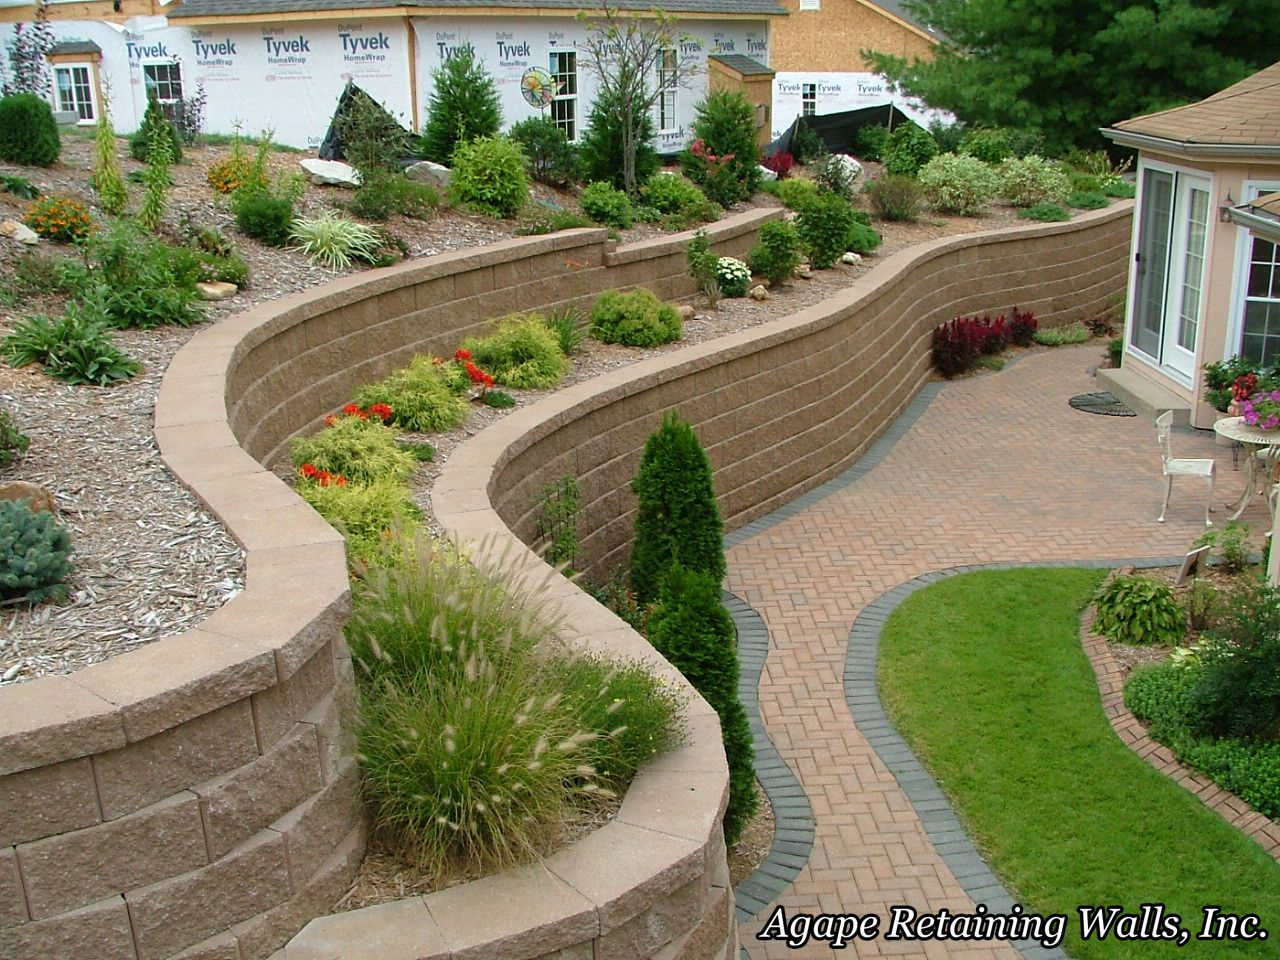 Retaining Wall Ideas Agape Retaining Walls Inc Built These